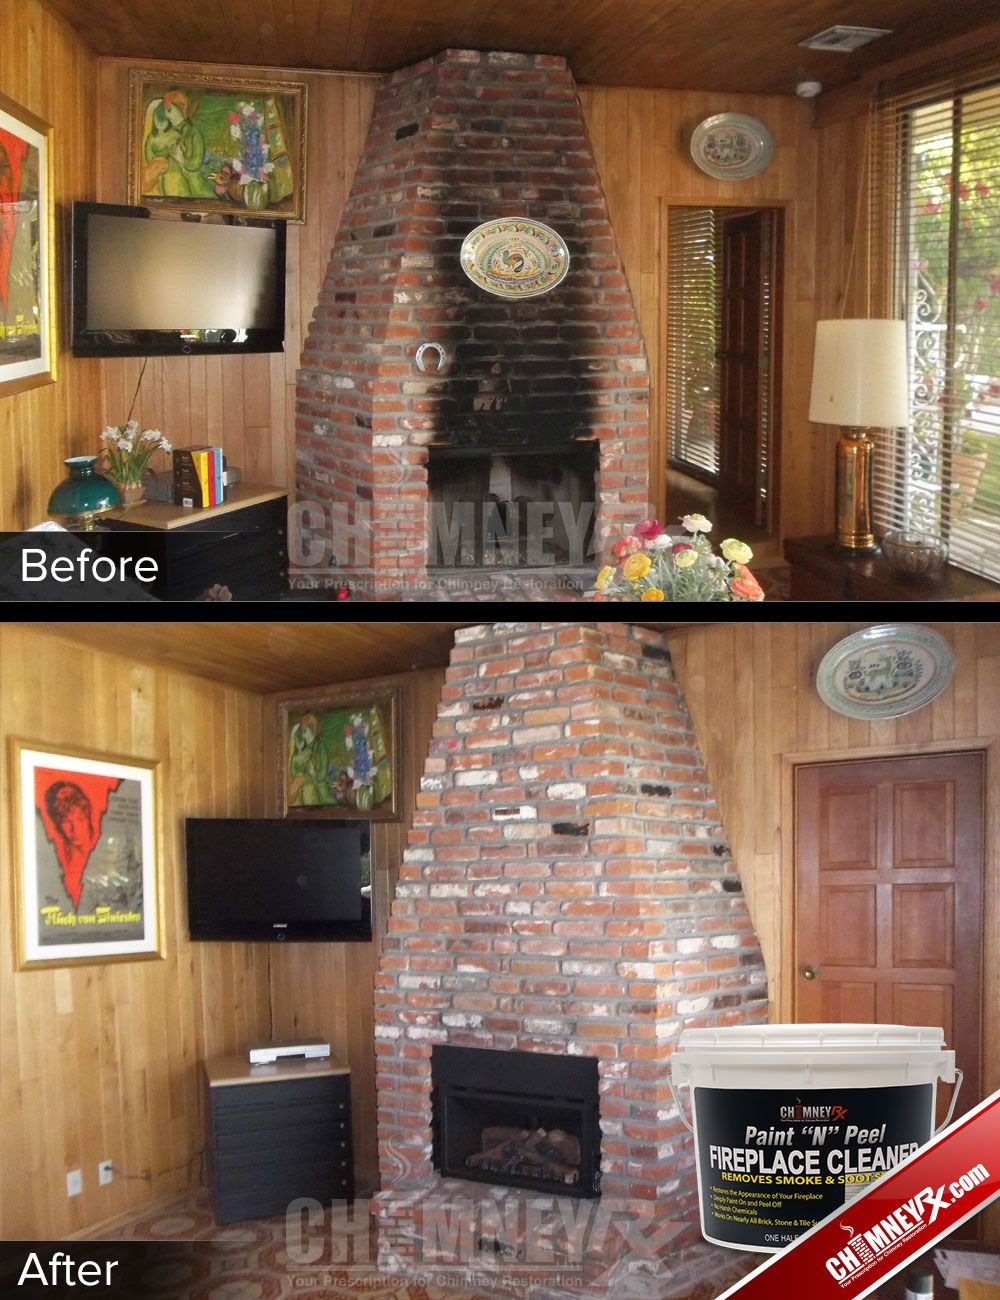 Black Smoke Stains On A Brick Fireplace Before And After Being